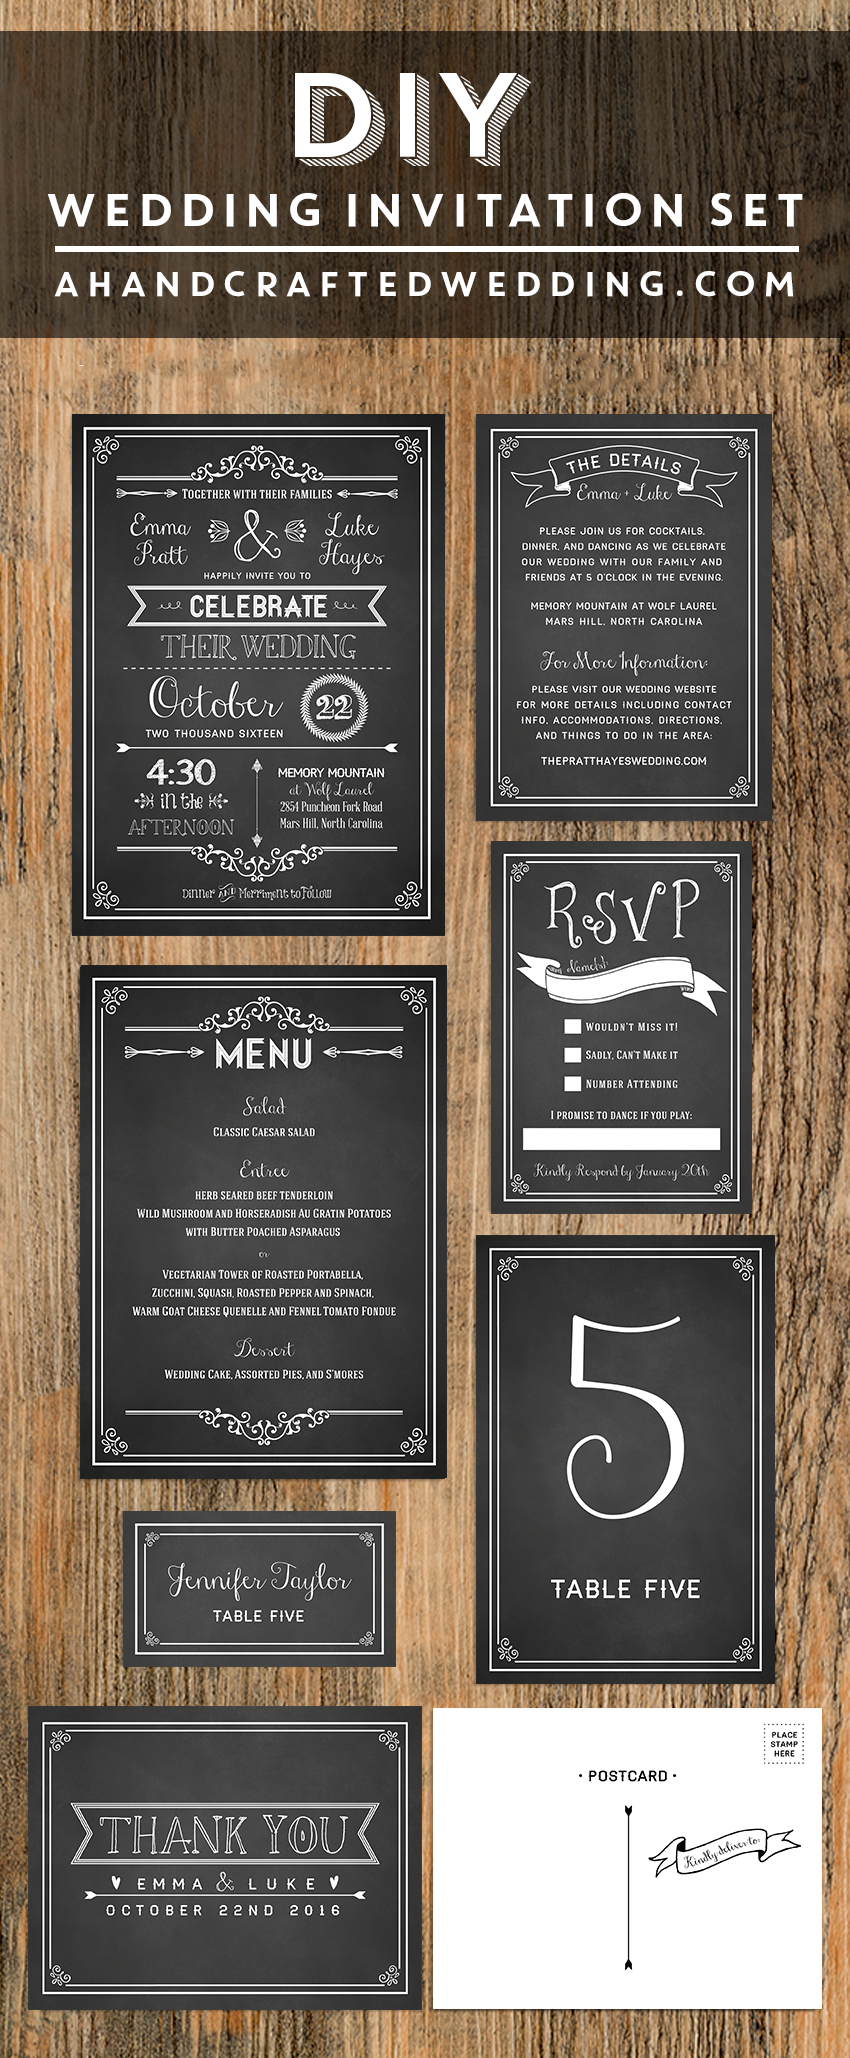 FREE Printable Wedding Invitation Template | Wedding invitation sets ...